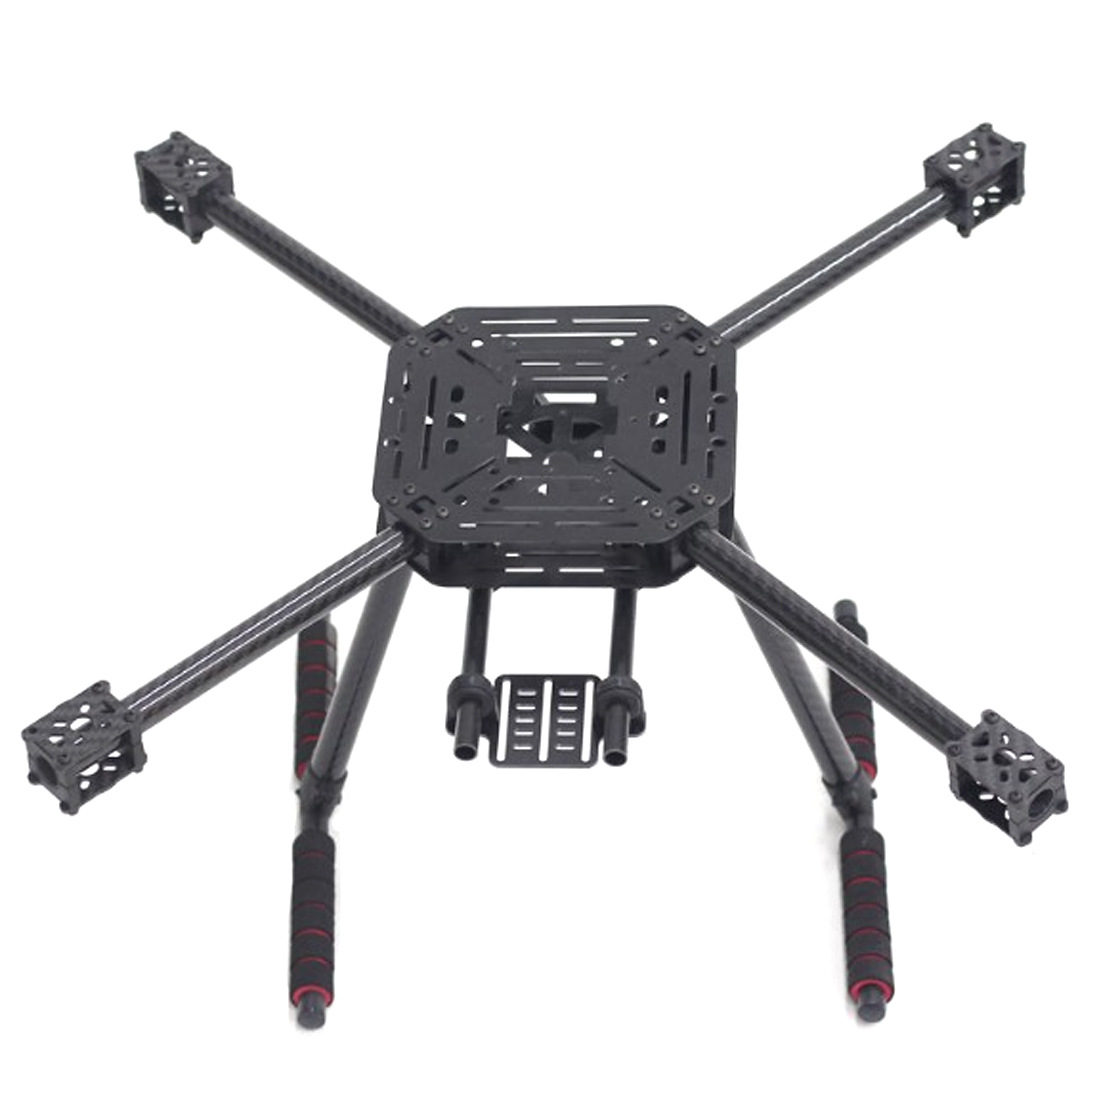 HOBBYINRC X500-X4 S500 F450 500MM FPV Quadcopter Carbon Fiber Frame Kit + Fixed Landing Skid jmt 500mm multi rotor air frame kit s500 pcb with circuit board for fpv quadcopter gopro gimbal f450 upgrade